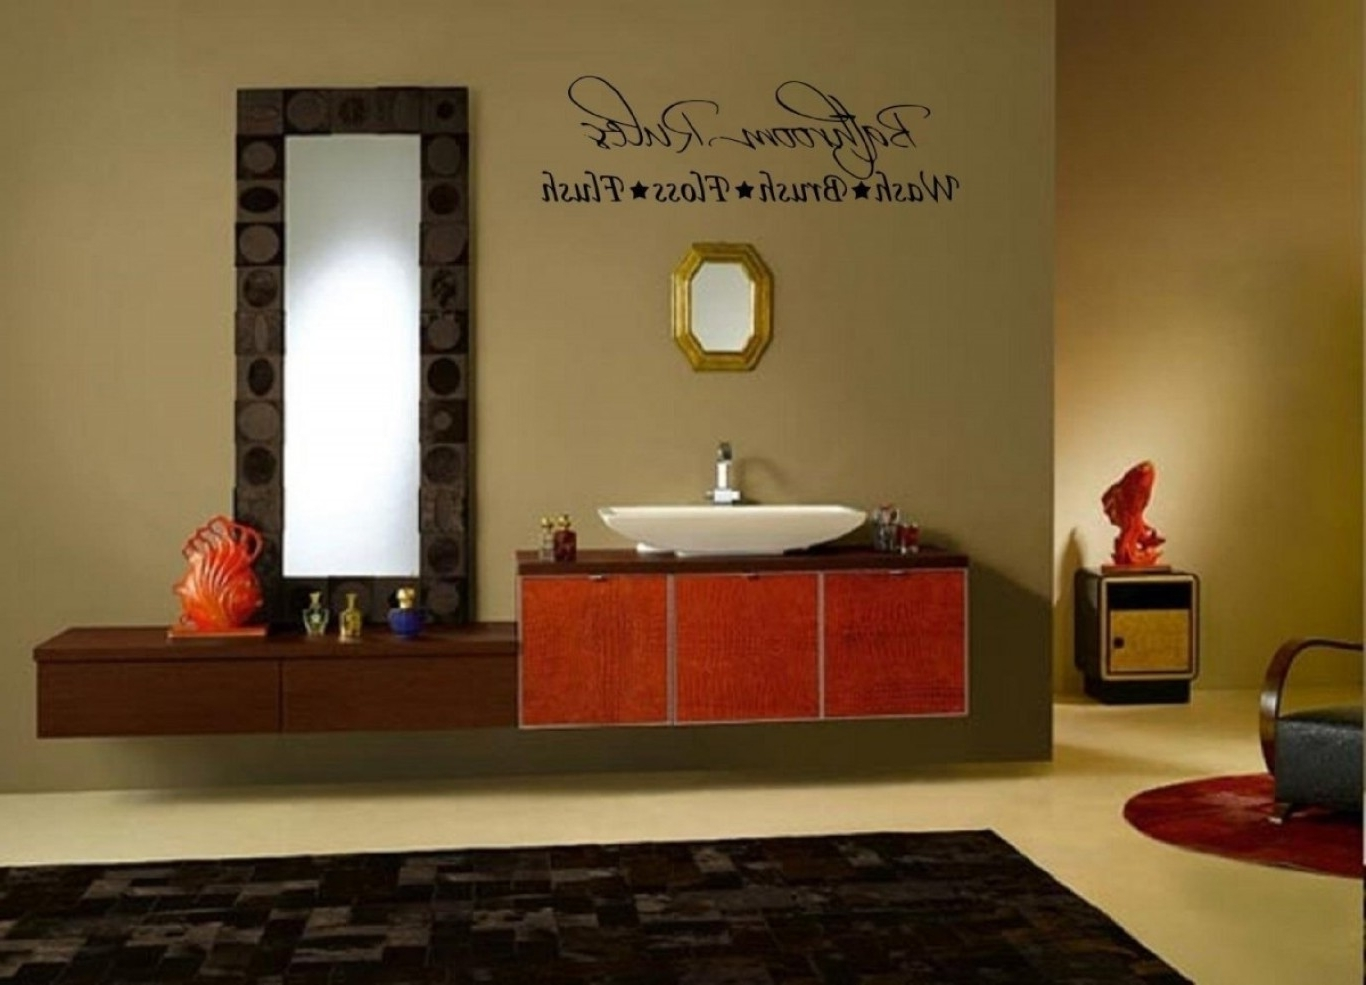 Bathroom Wall Decor Regarding Most Current Wall Accents For Bathroom (View 2 of 15)